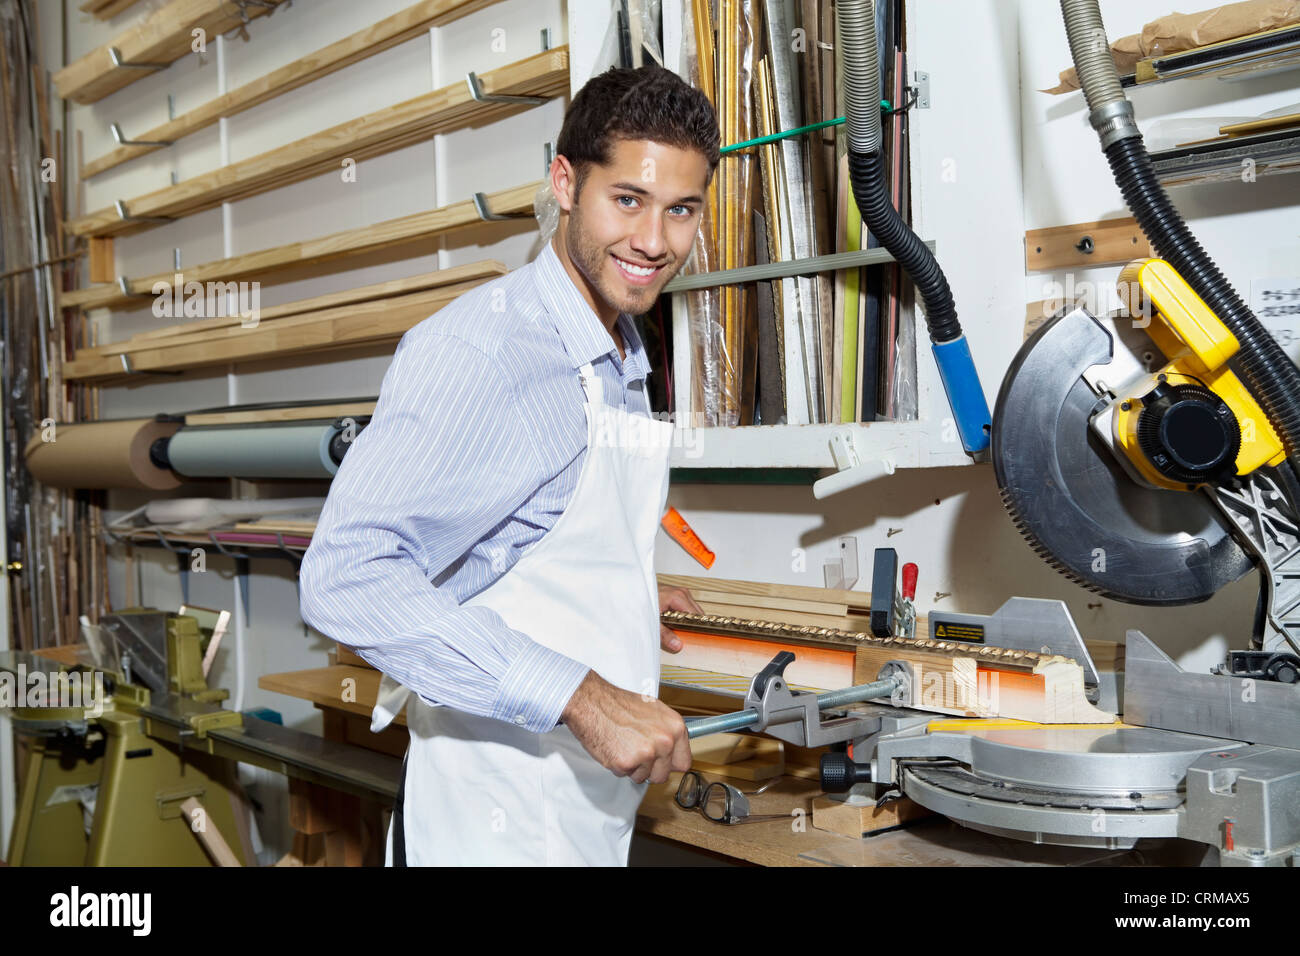 Portrait of a happy young craftsman standing by circular saw machinery - Stock Image